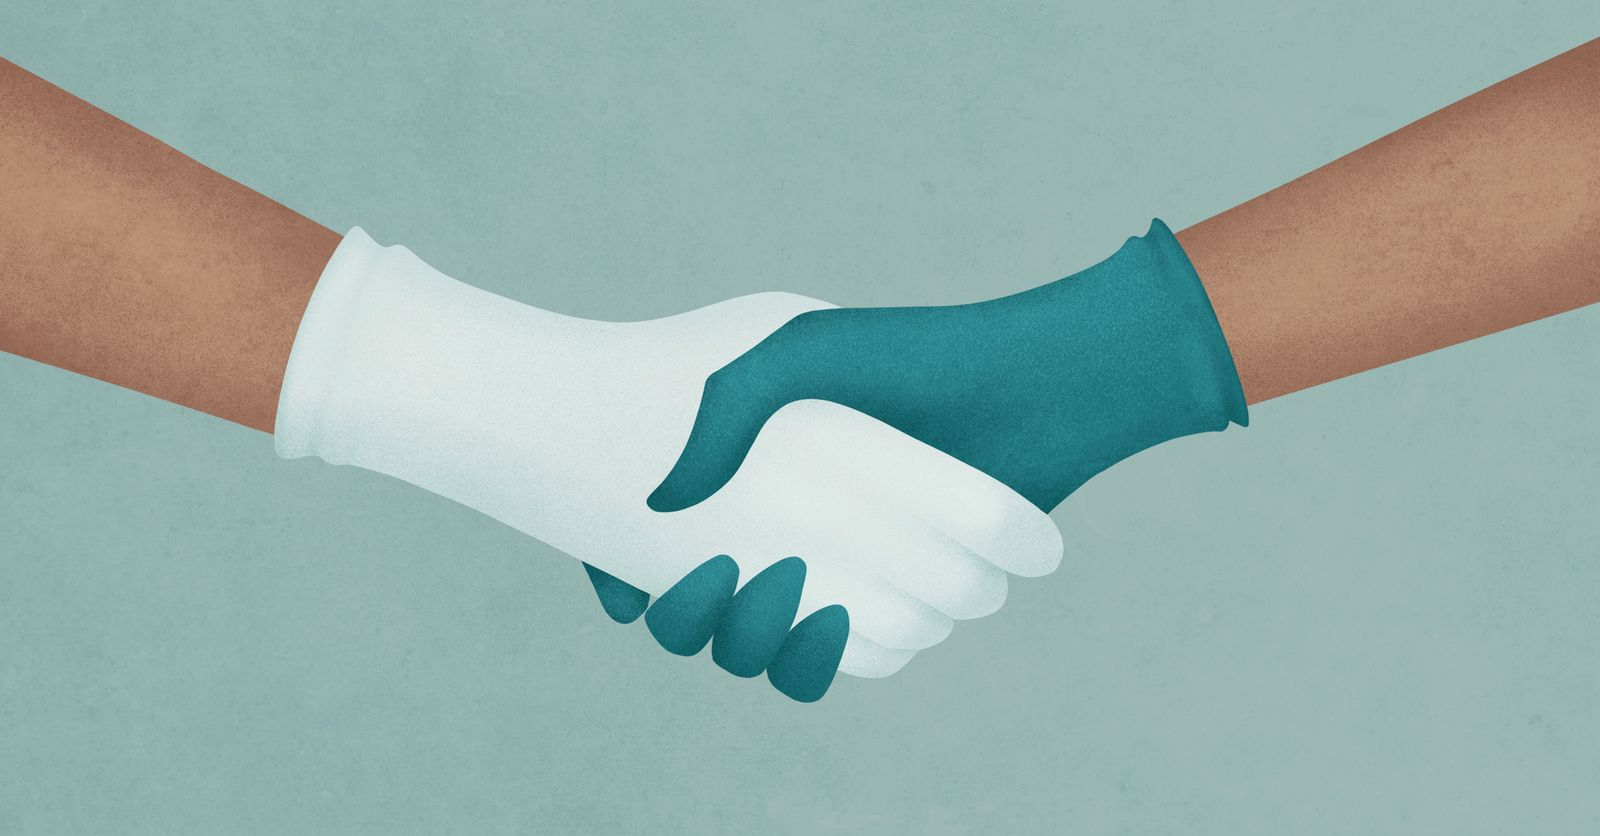 Handshake With Blue And White Medical Gloves. Healthcare Concept.